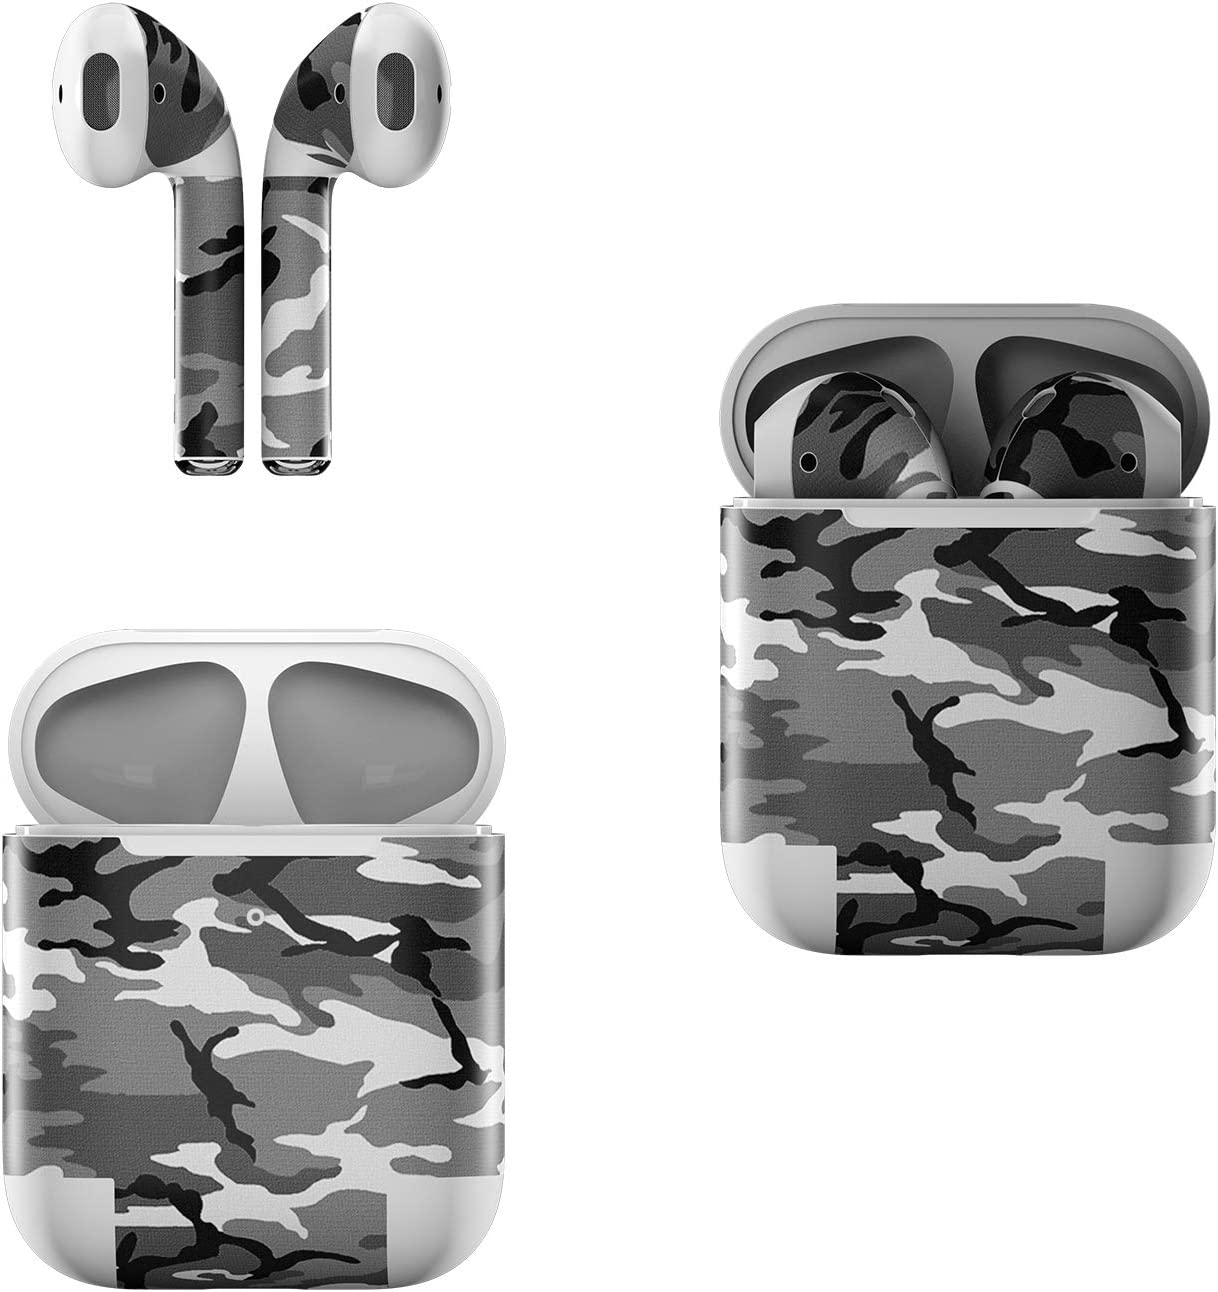 Skin Decals for Apple AirPods - Urban Camo - Sticker Wrap Fits 1st and 2nd Generation